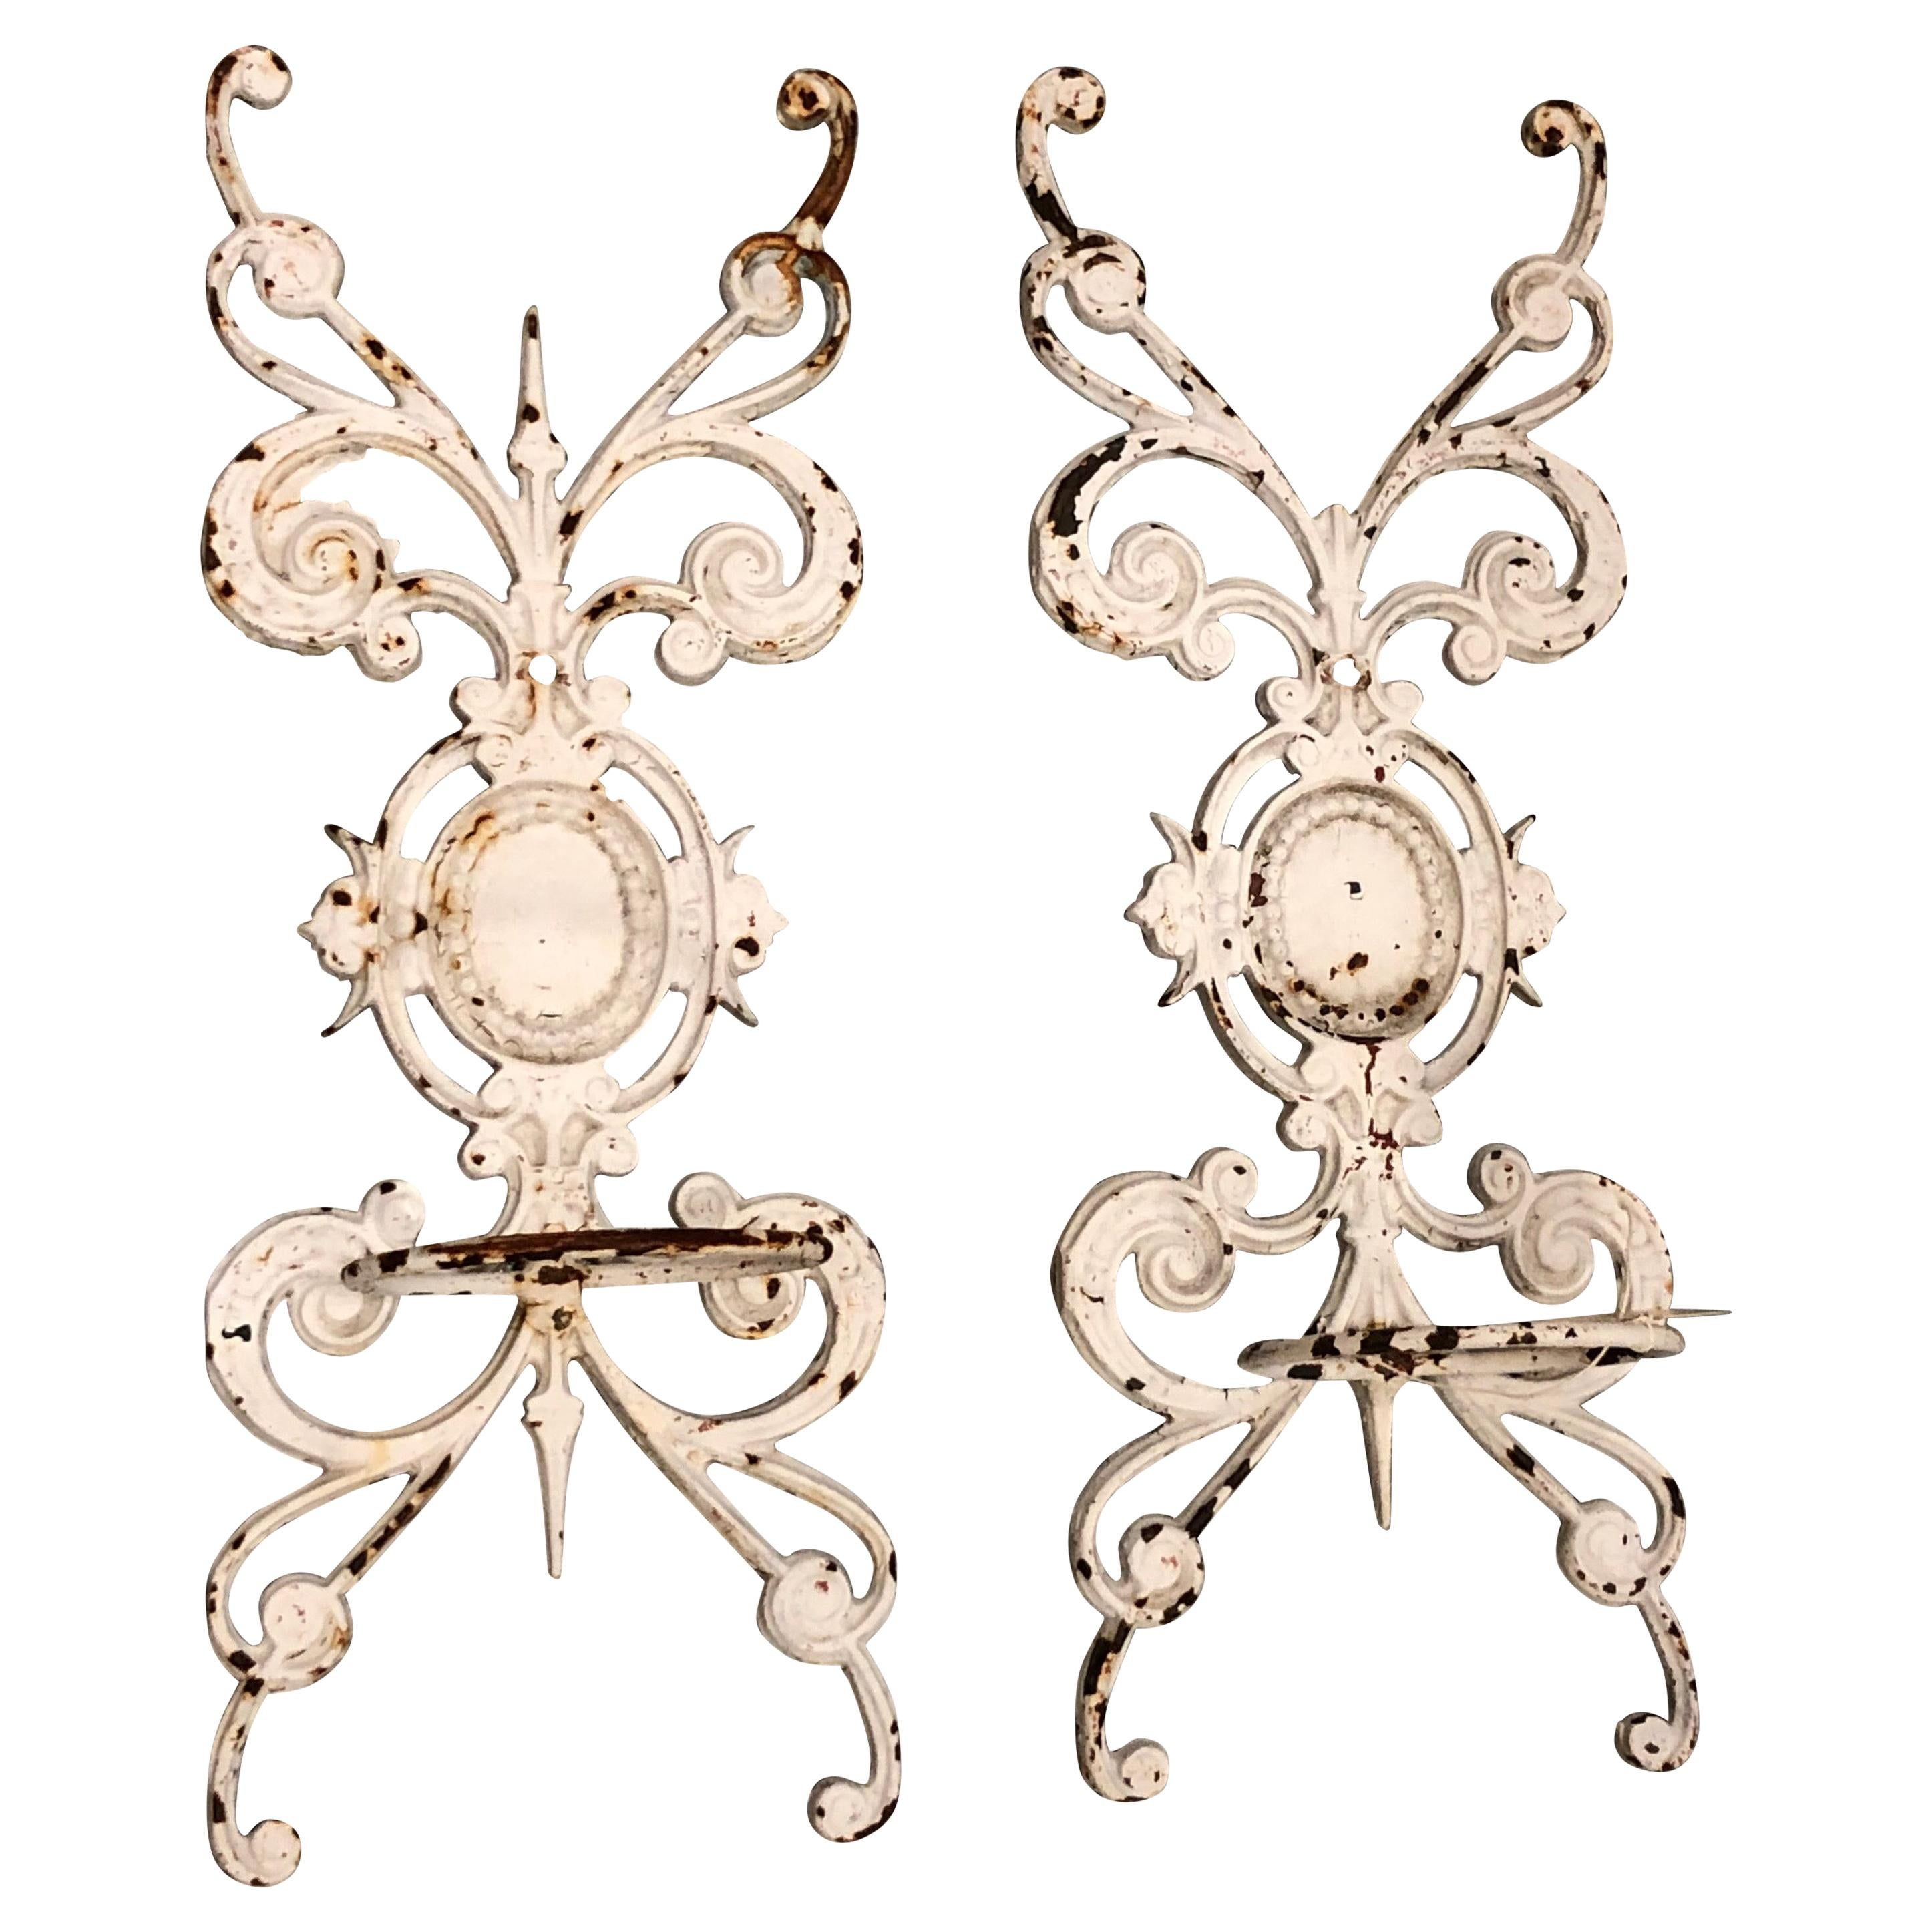 Pair of Neoclassical Iron Wall Planters at 1stdibs on Iron Wall Vases id=50430